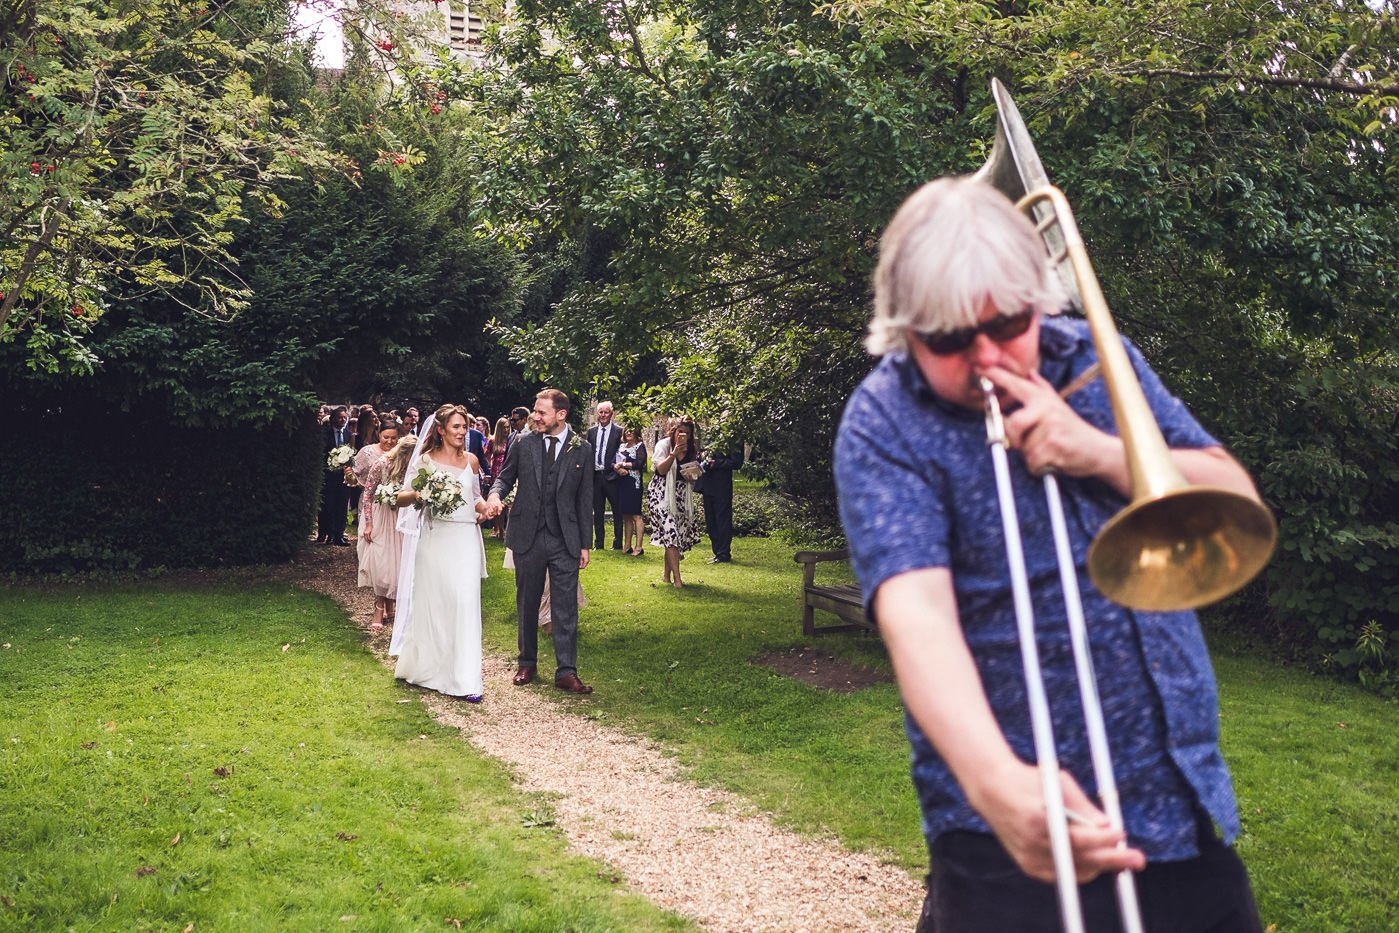 Hackney colliery band leading wedding guests